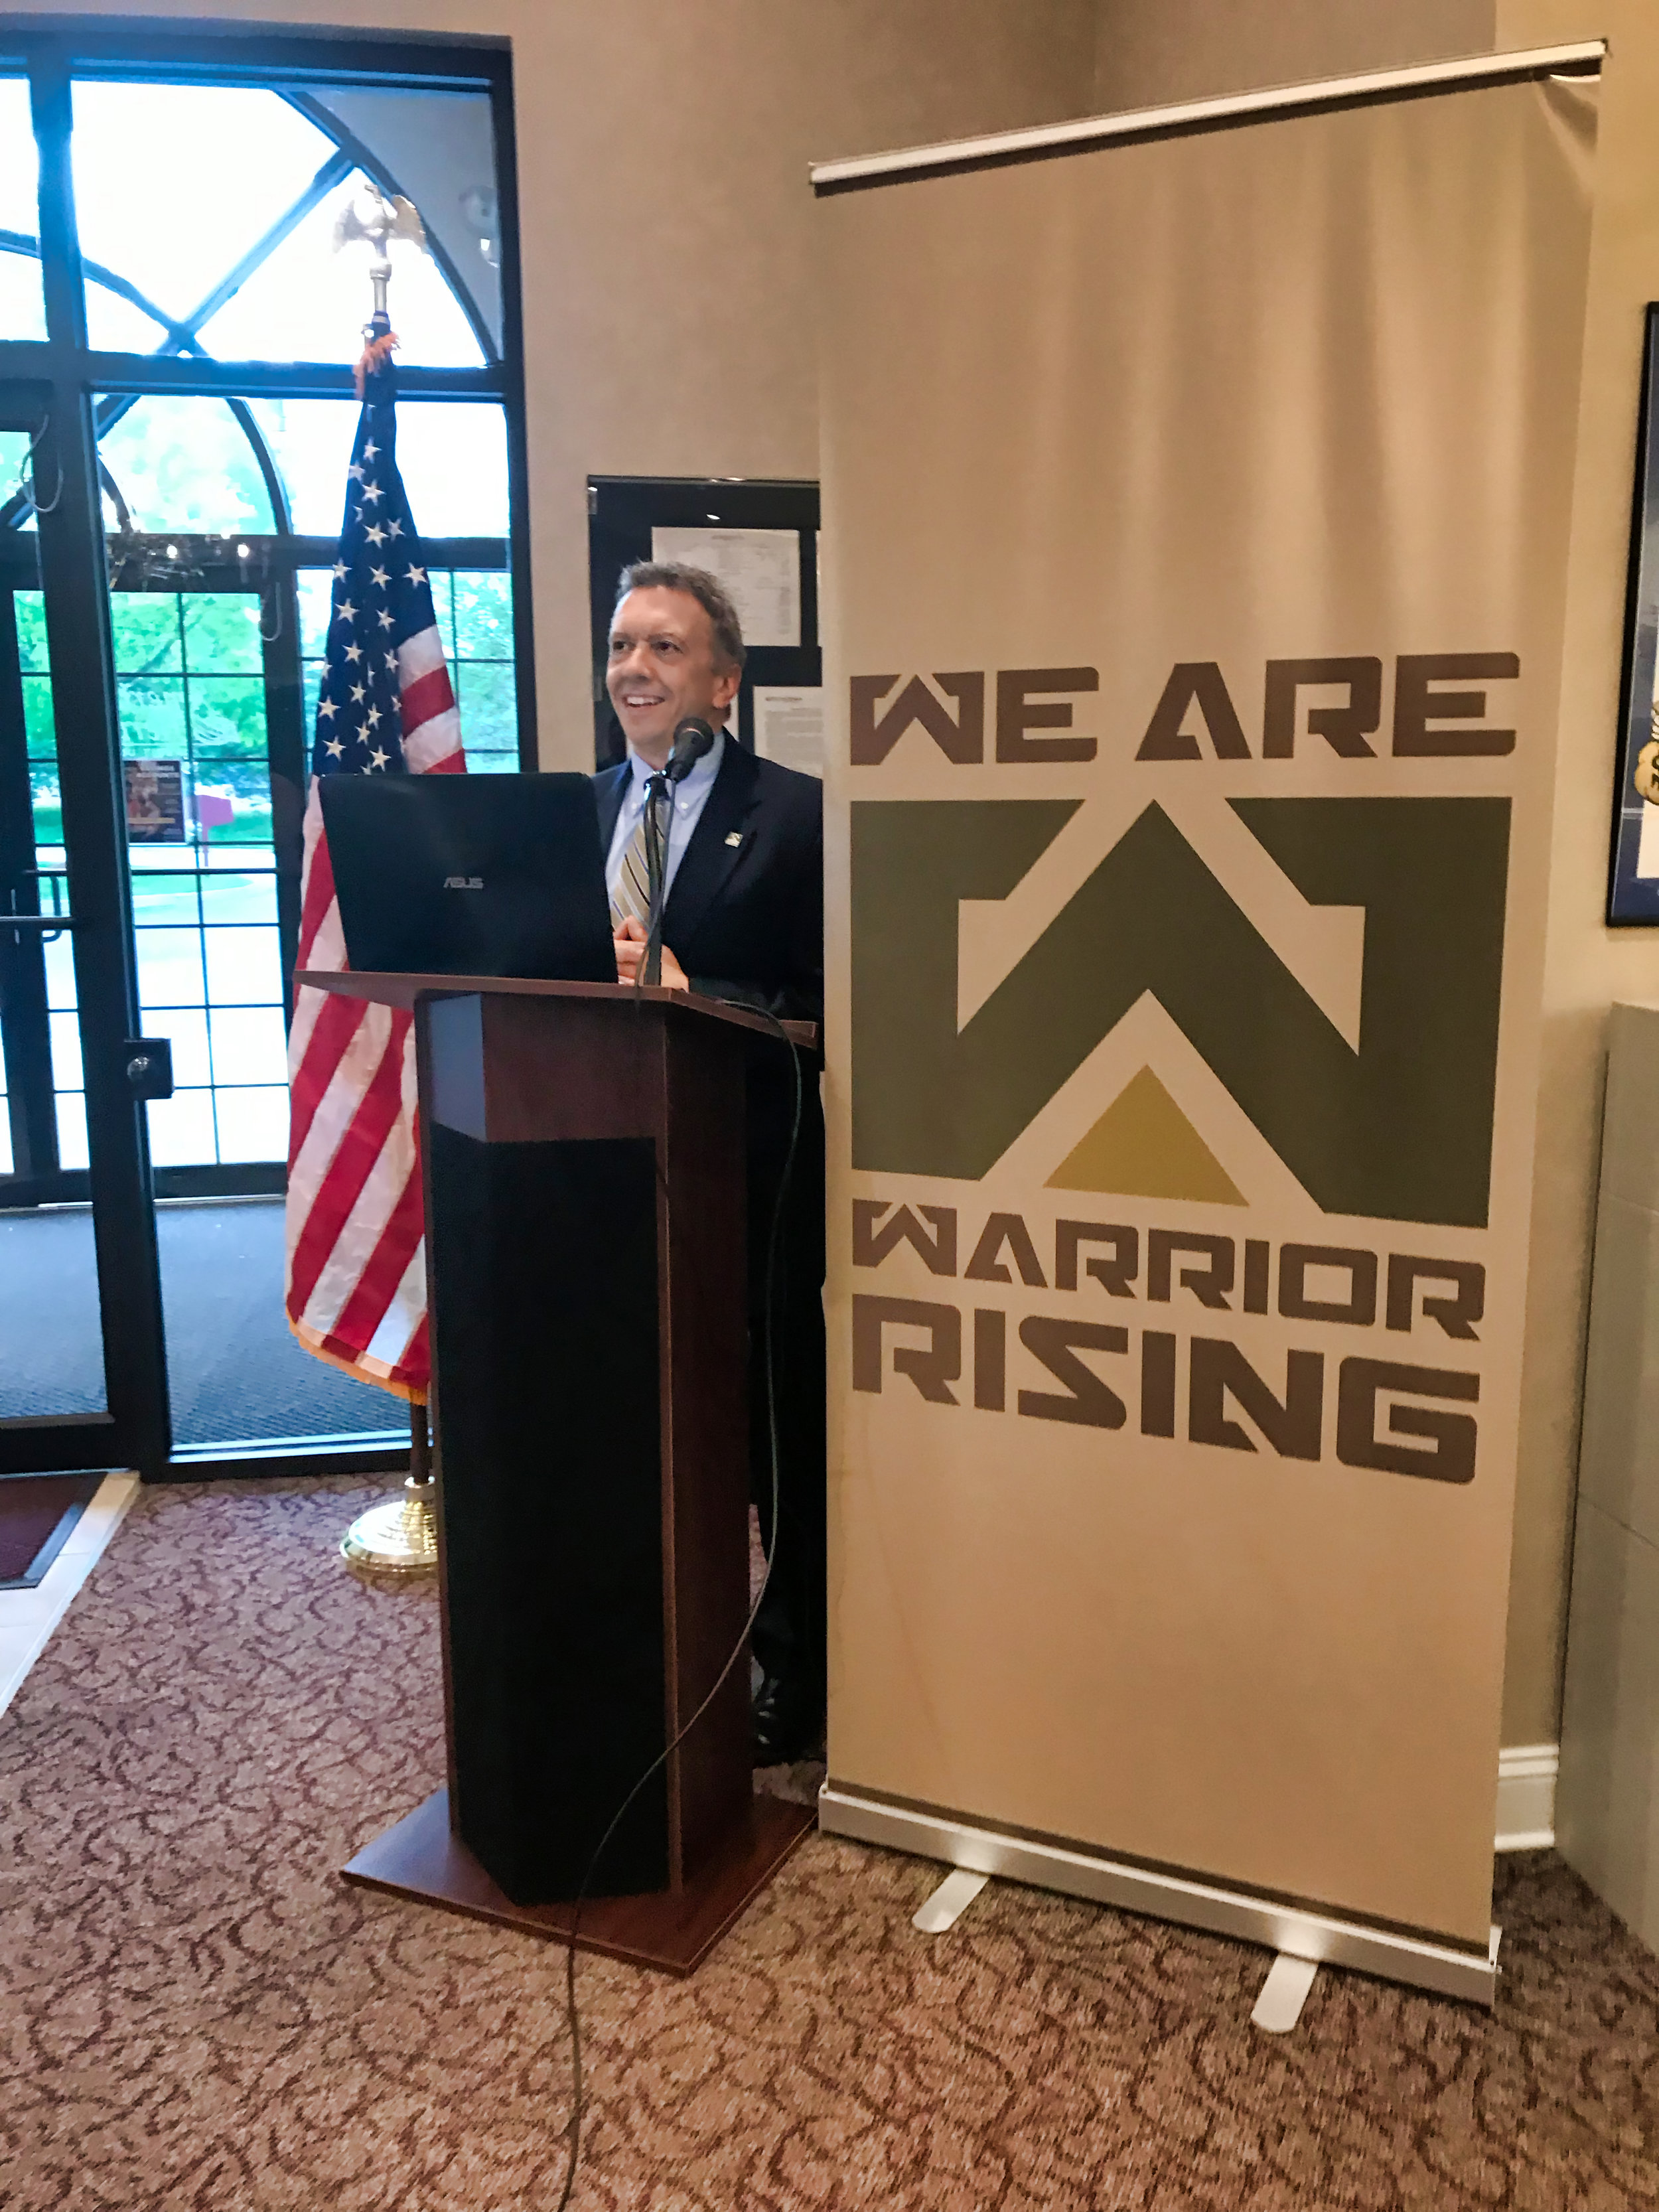 Sir Knight Ken Vennera - Master of Ceremony for Warrior Rising gathering at the American Heritage Savings Bank, King of Prussia, PA.